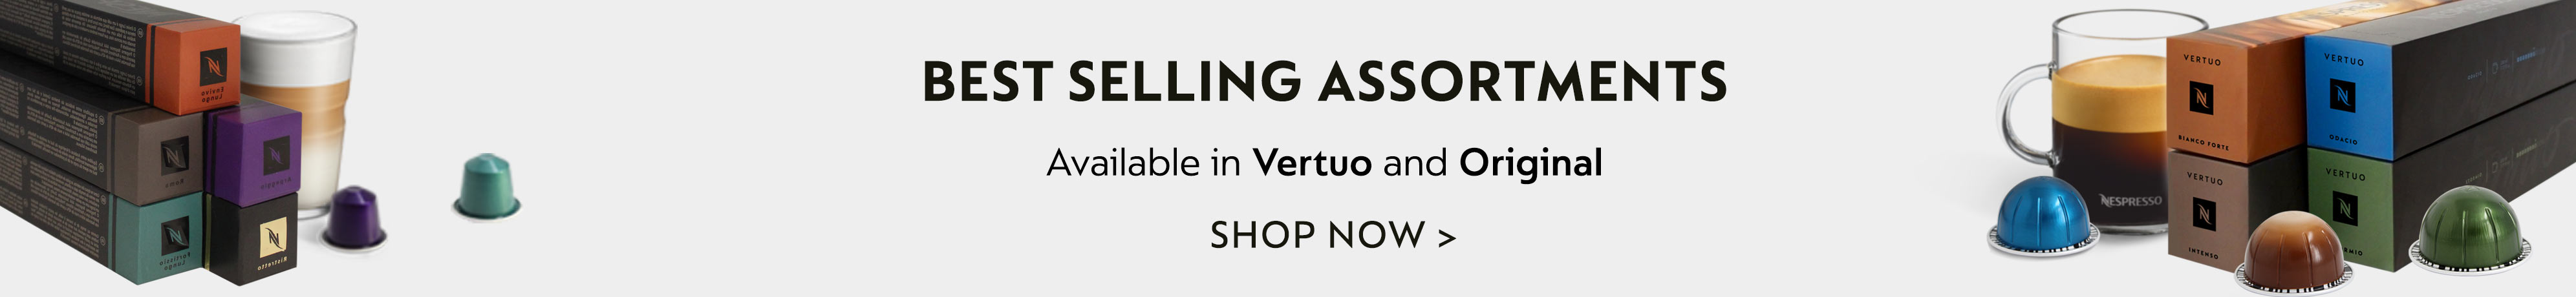 Bestselling assortments for vertuo and original. Shop now.